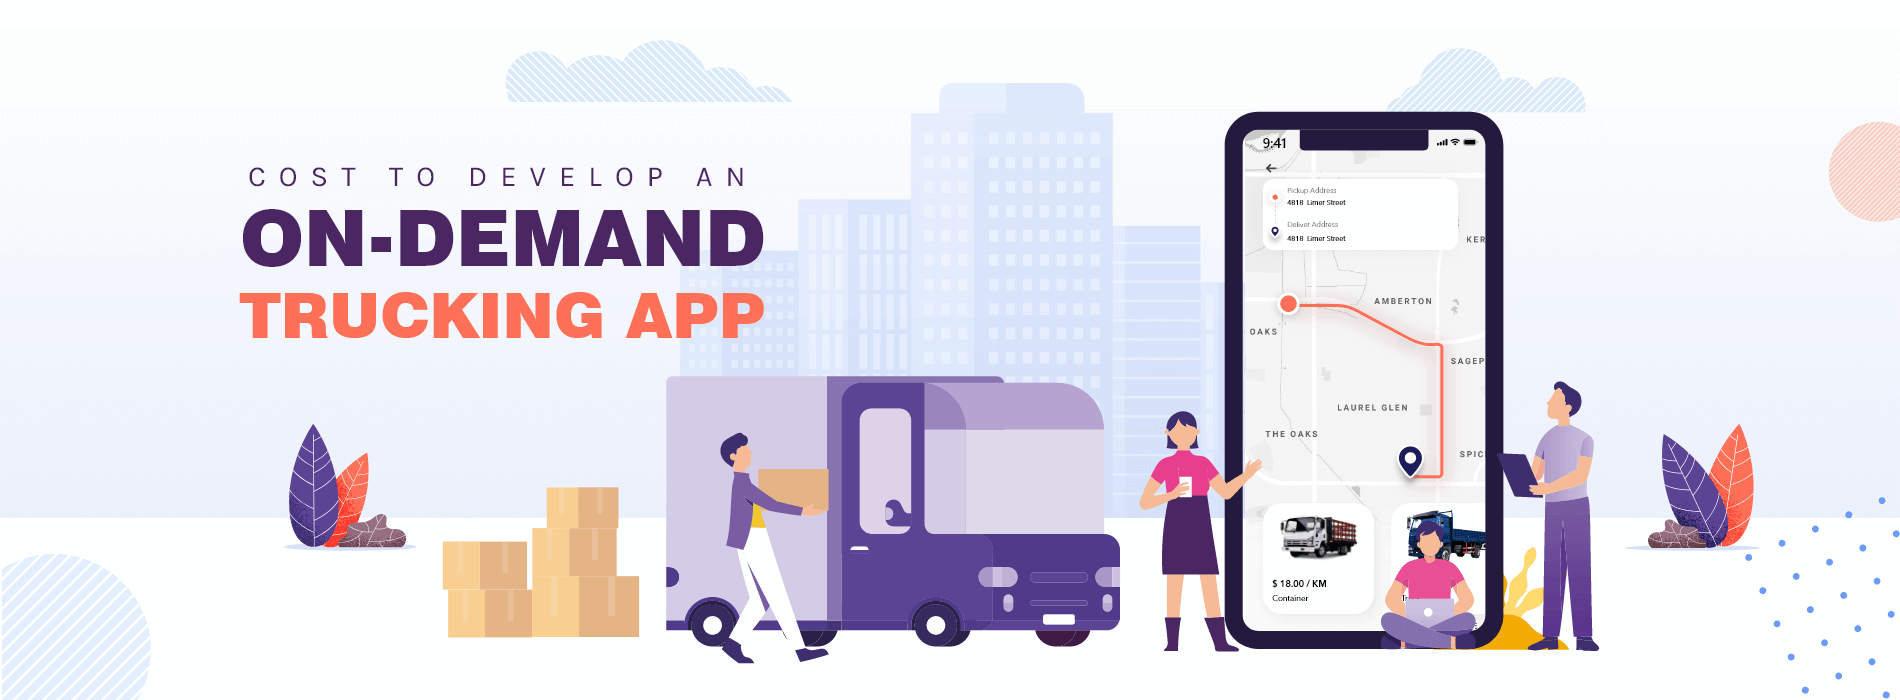 Cost to Develop an On-Demand Trucking App